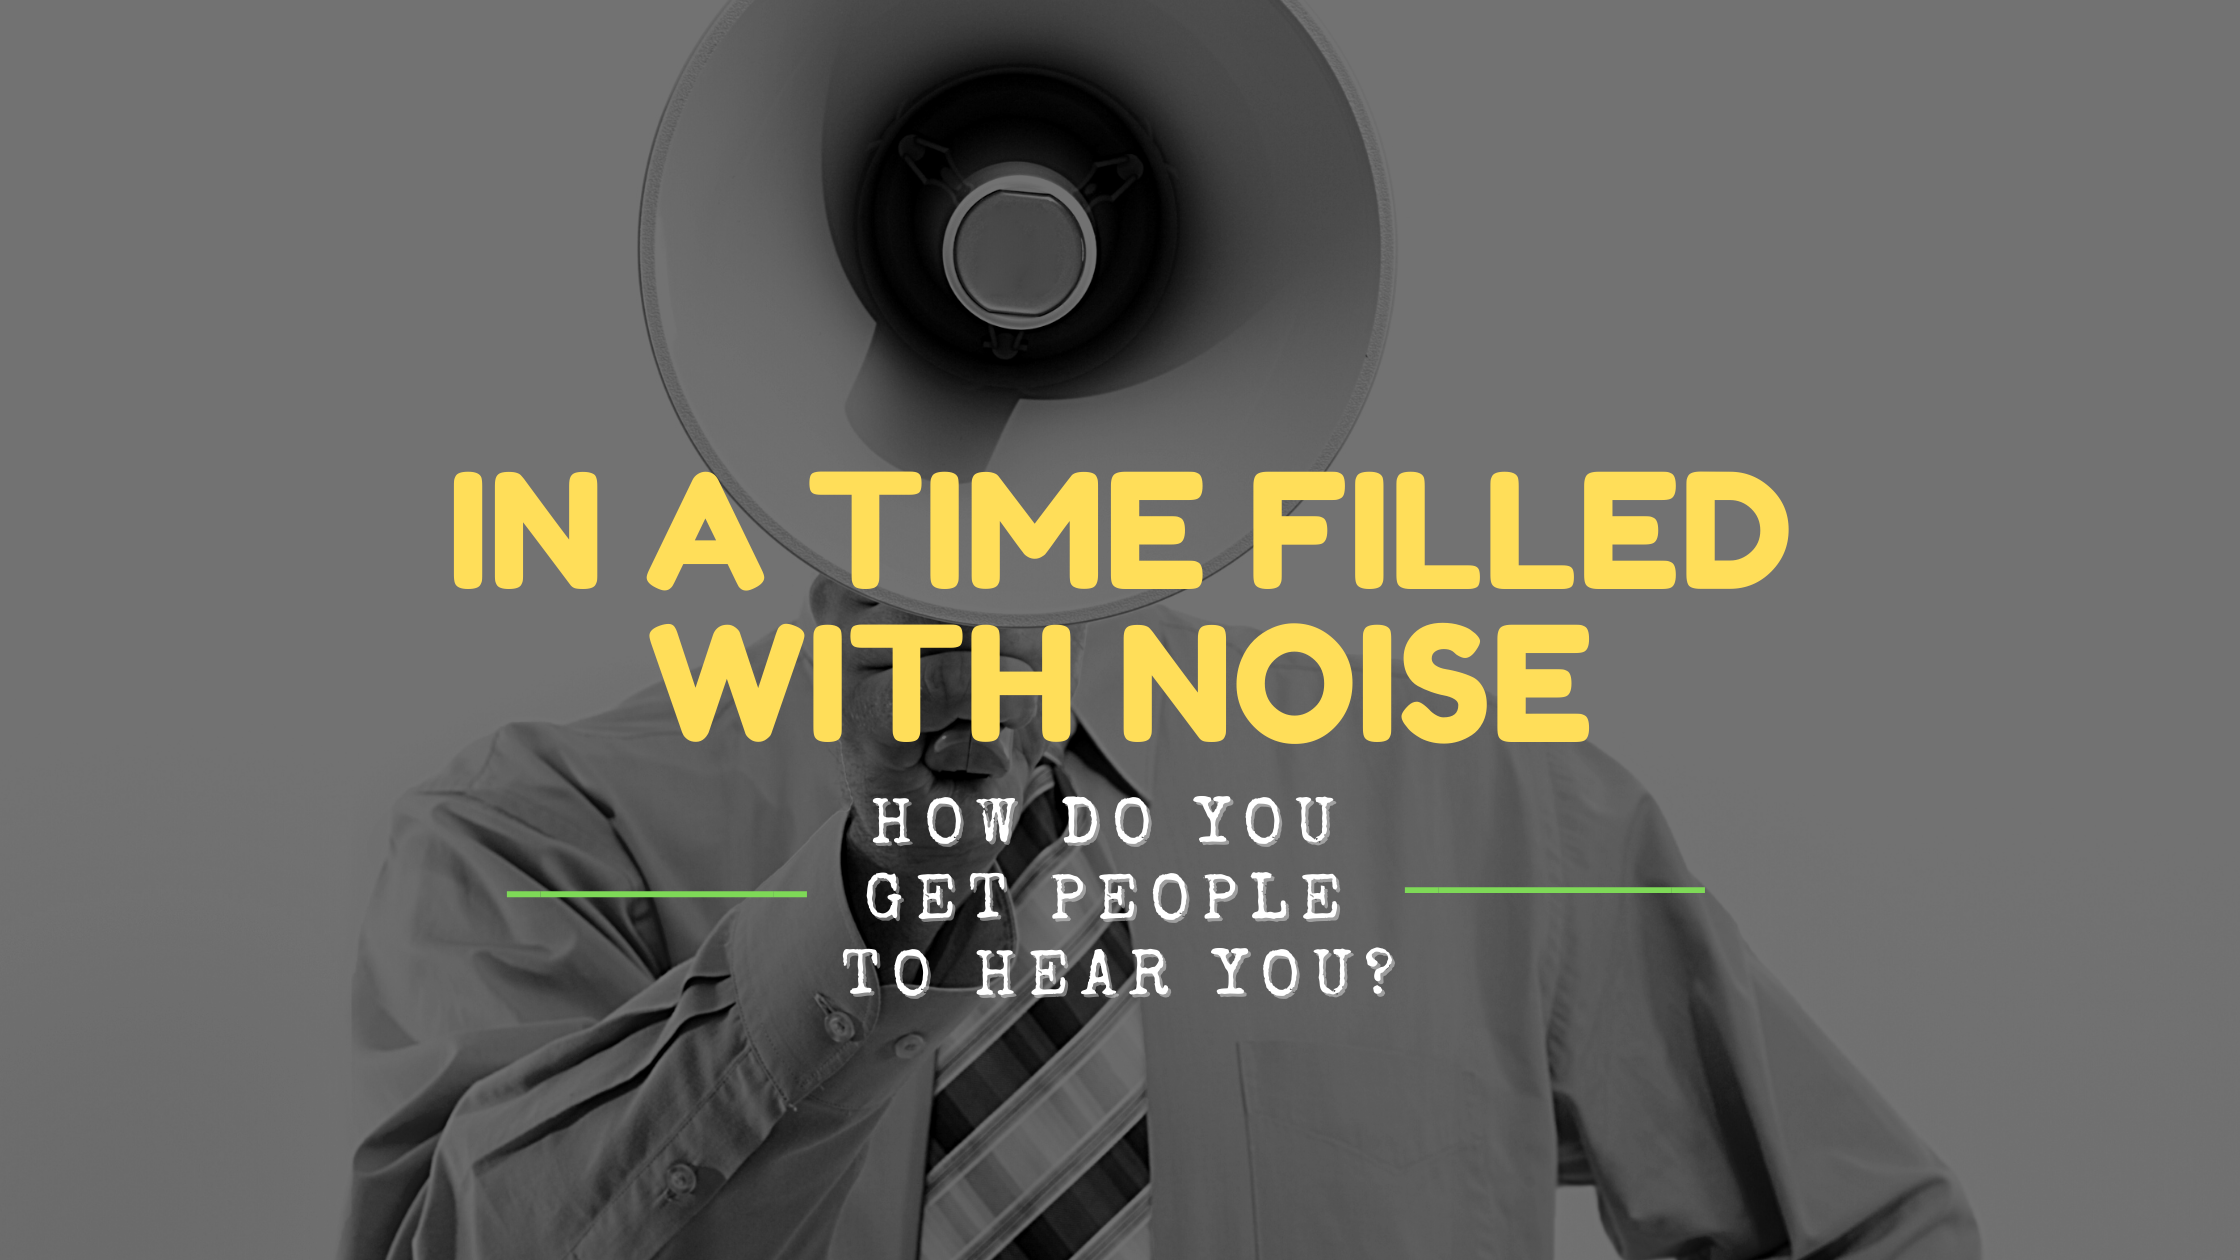 In A Time Filled With Noise, How Do You Get People To Hear You?